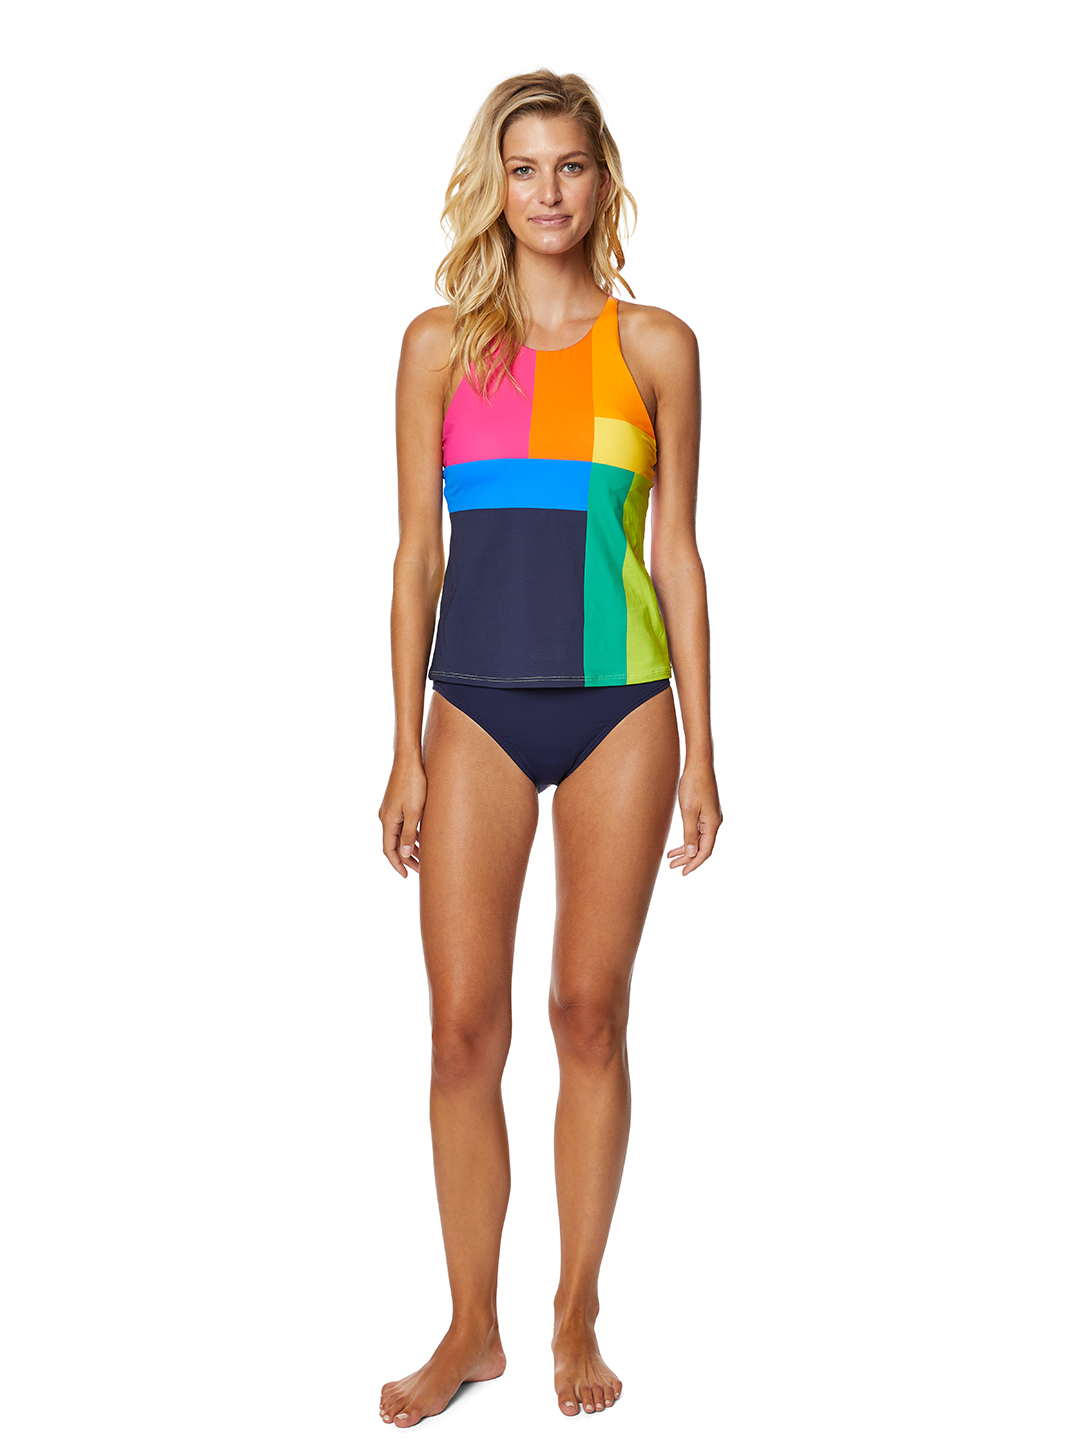 Nautica® Lighthouse High Neck Tankini Swimsuit Top -Multi - Front